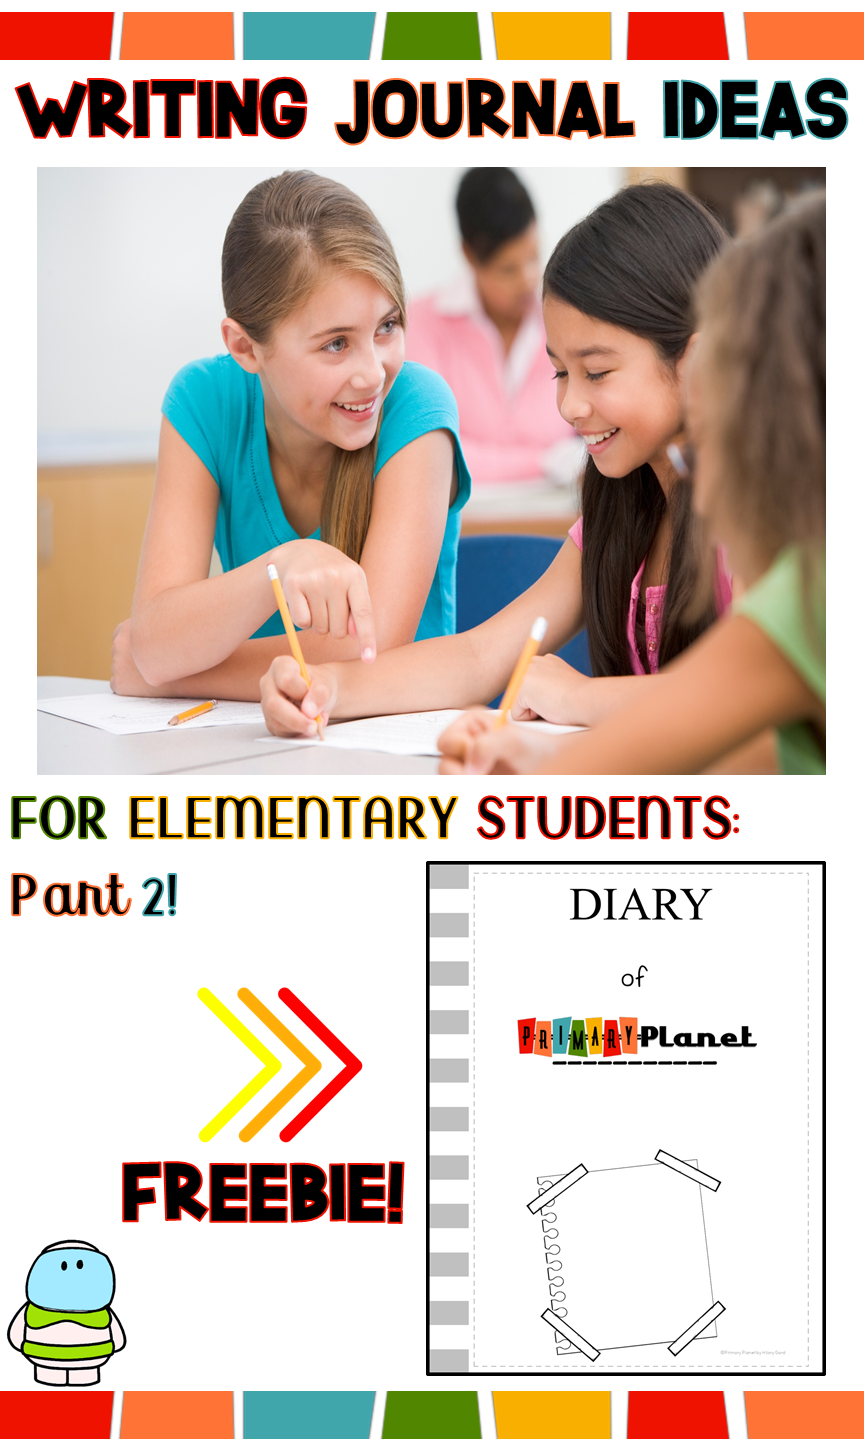 Get your elementary students writing with these writing journal ideas! I love using journals in my classroom to enhance my writing workshop or work on writing time! This blog post is Part 2 of a blog series about using writing journals in your classroom. This blog post has ideas for different types of journals that you can use in your classroom. It also includes a freebie, so you want to check it out! #primaryplanet #iteachwriting